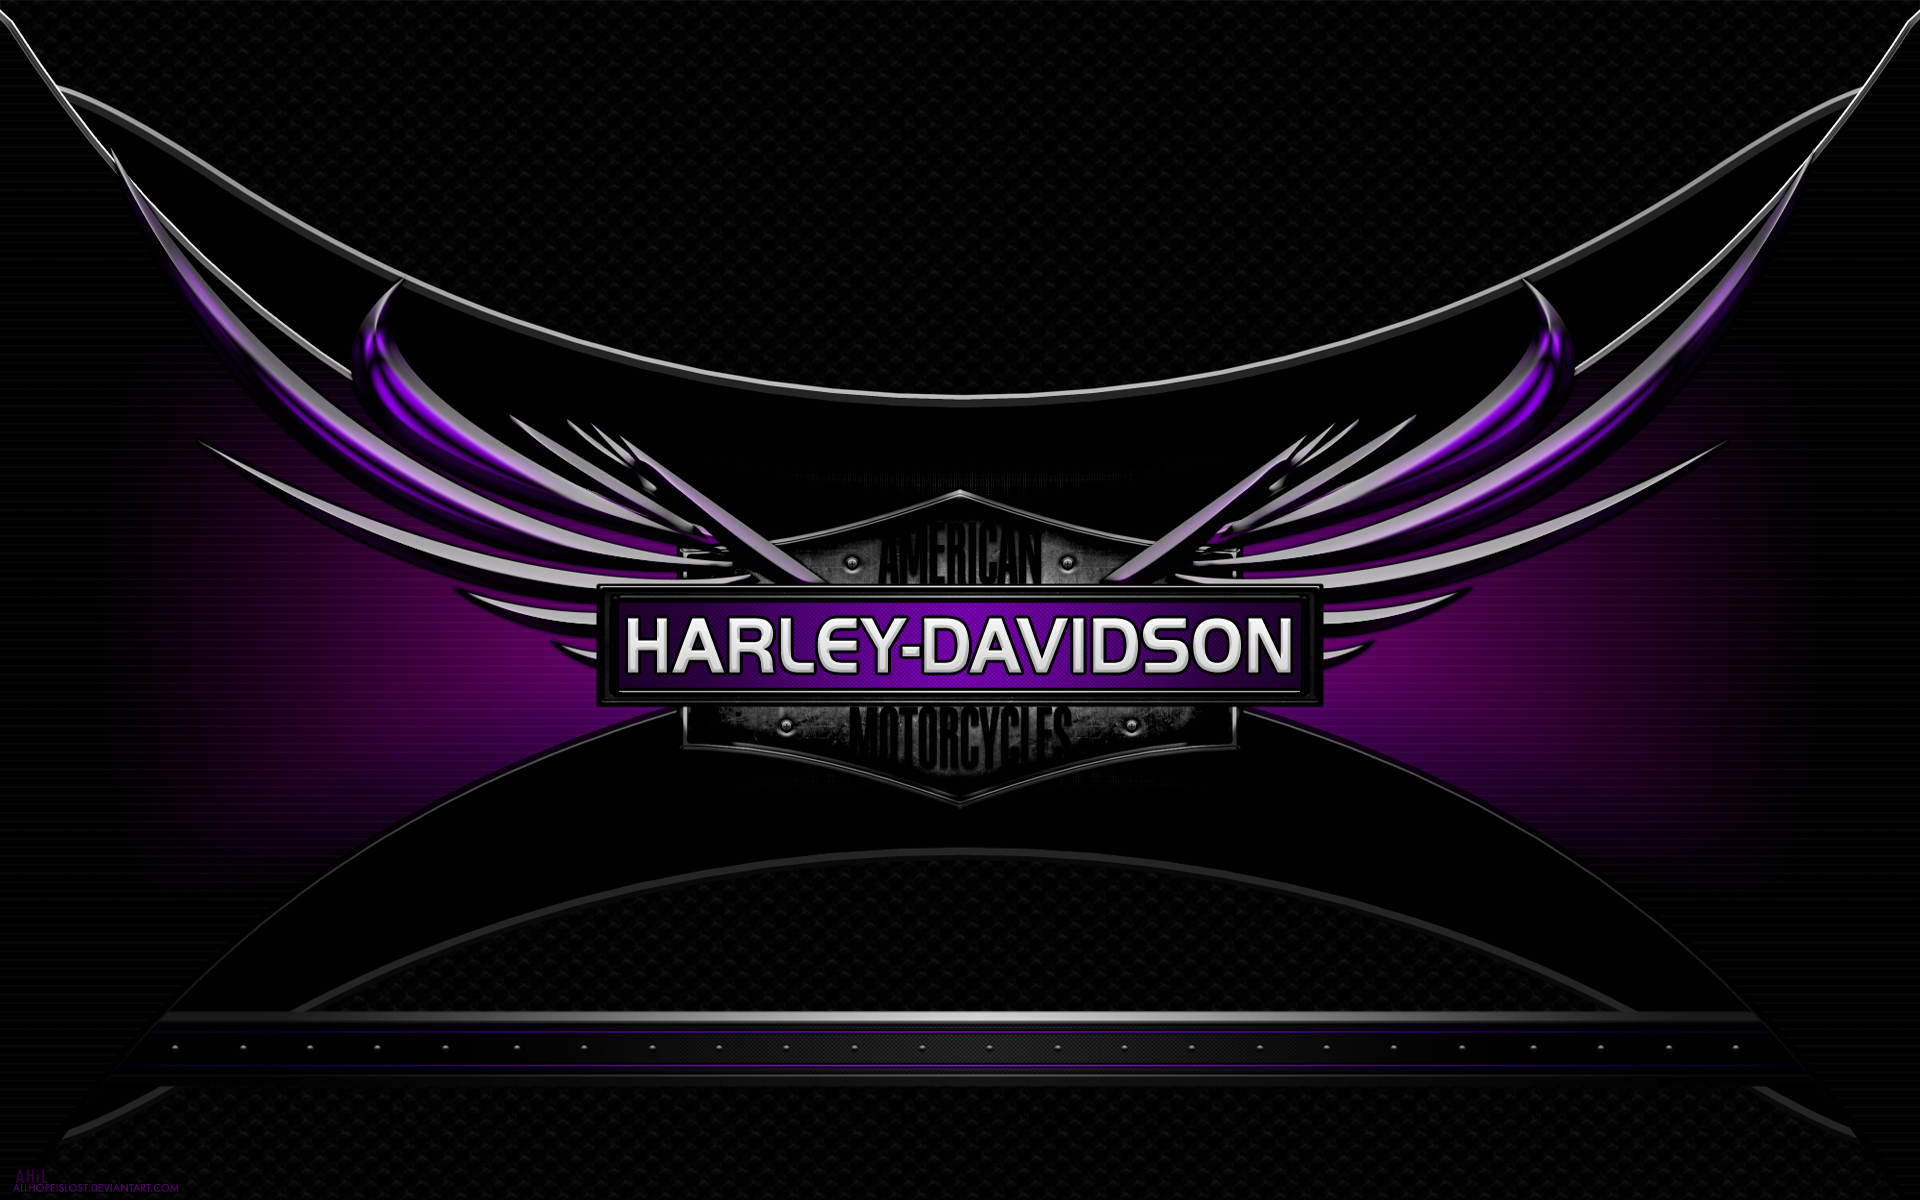 Harley Davidson clipart pink Pinterest on best HARLEY images